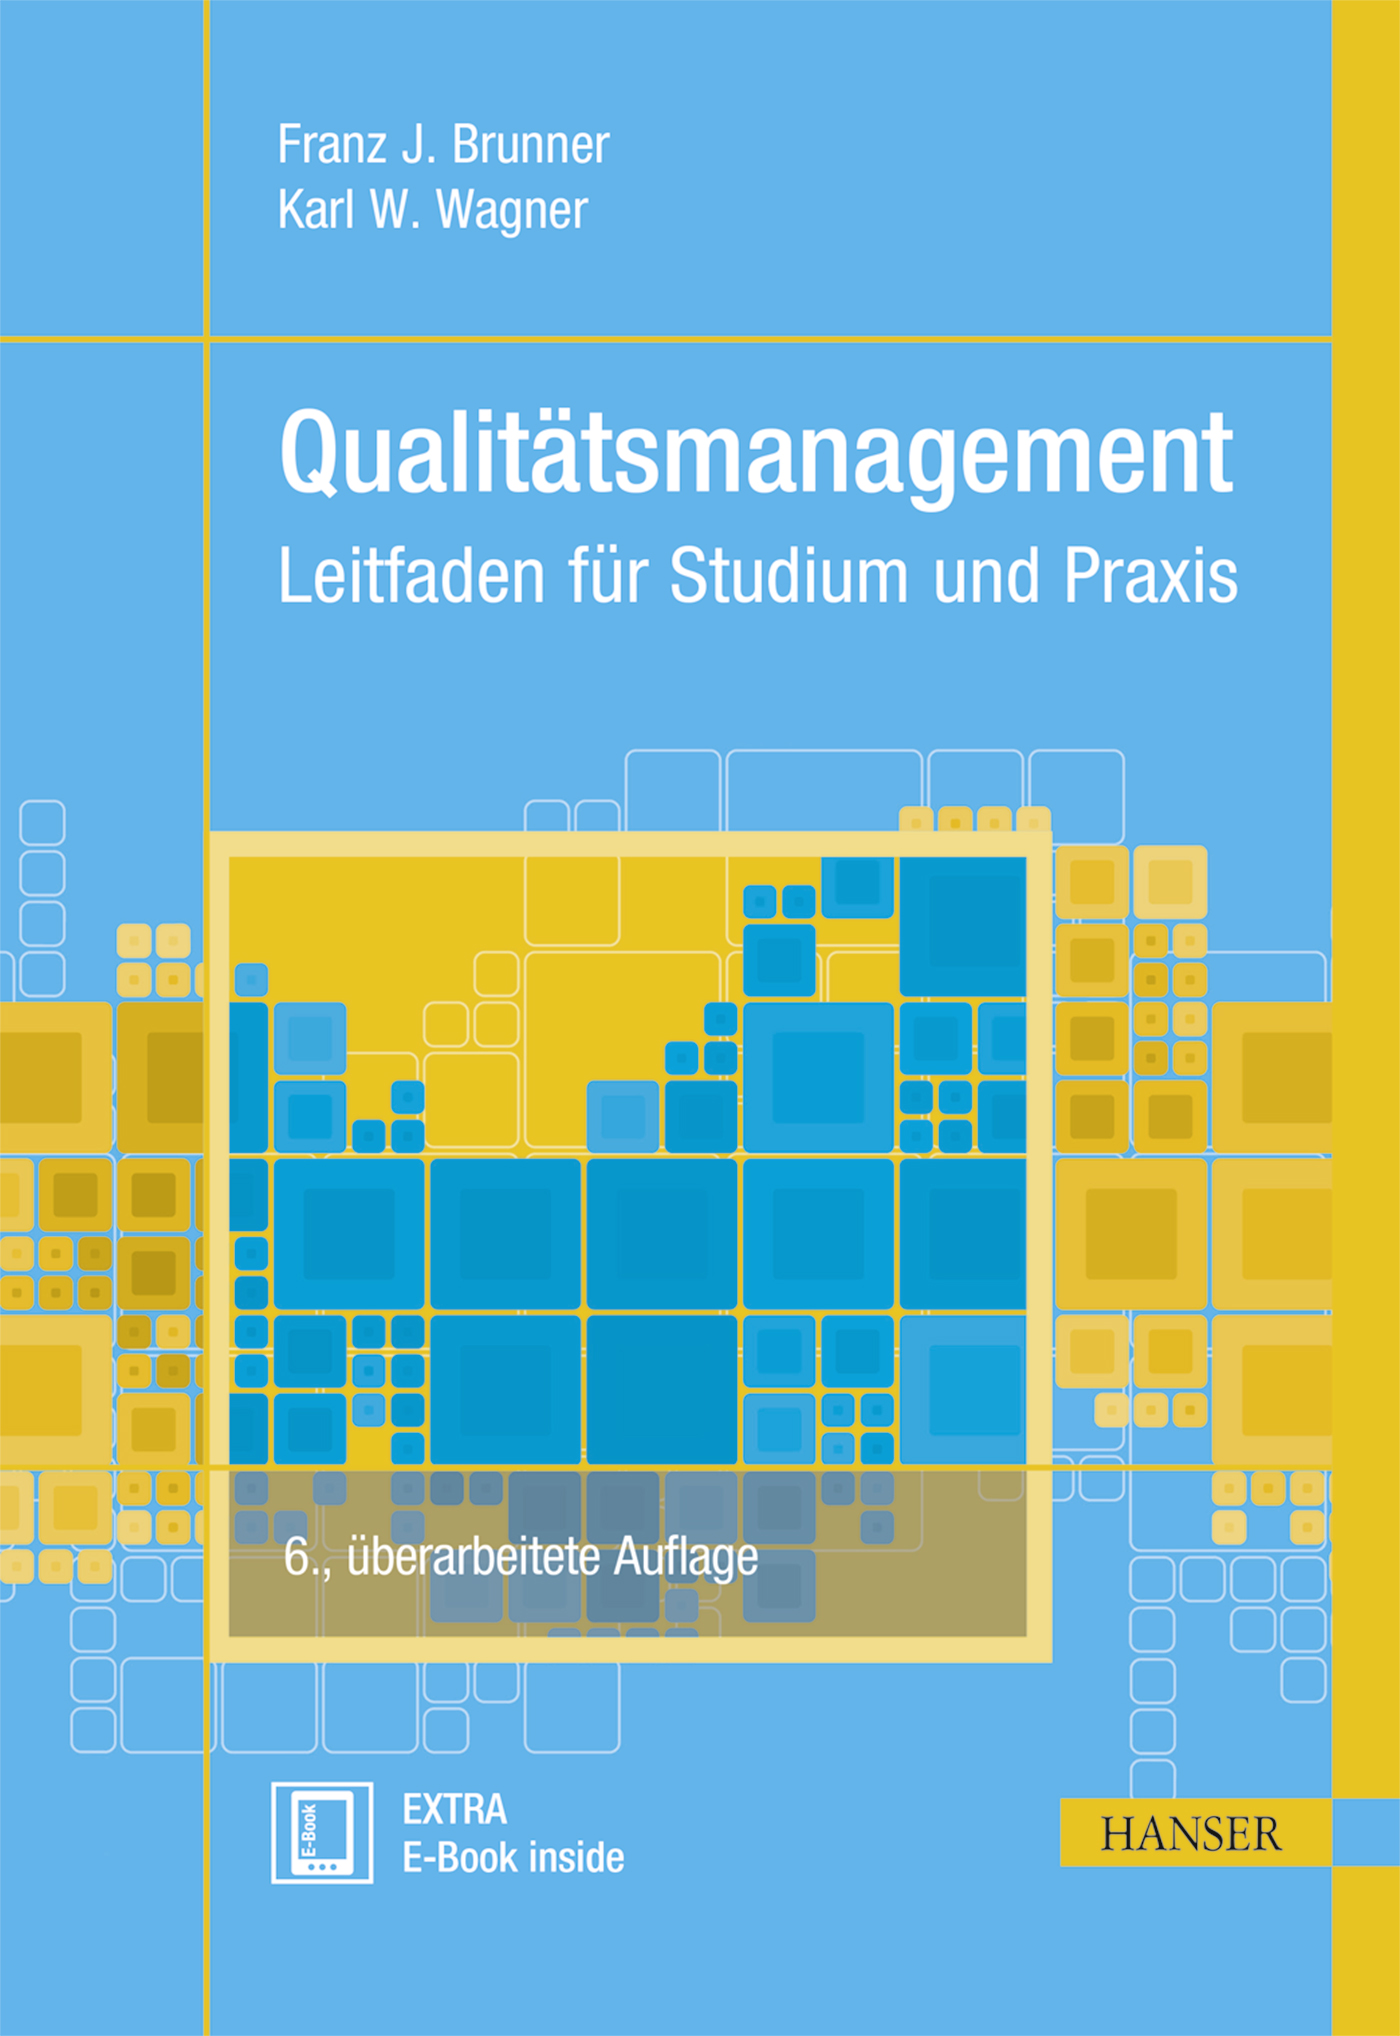 Qualitätsmanagement, 978-3-446-44712-7